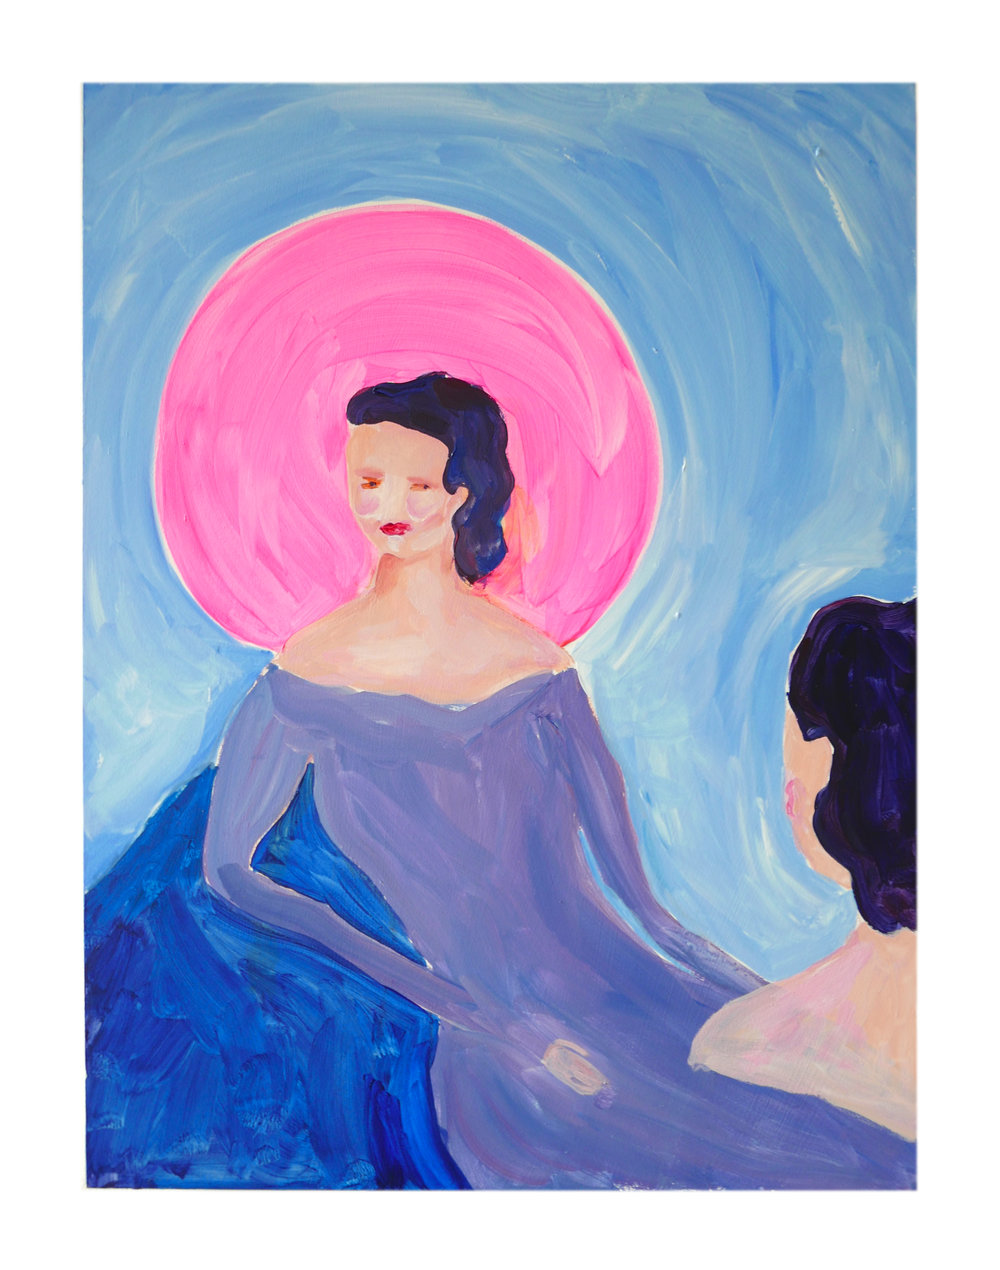 The mirror by Claire de Lune 2018, acrylic and gesso on hardwood panel, 40.5 x 31 cm